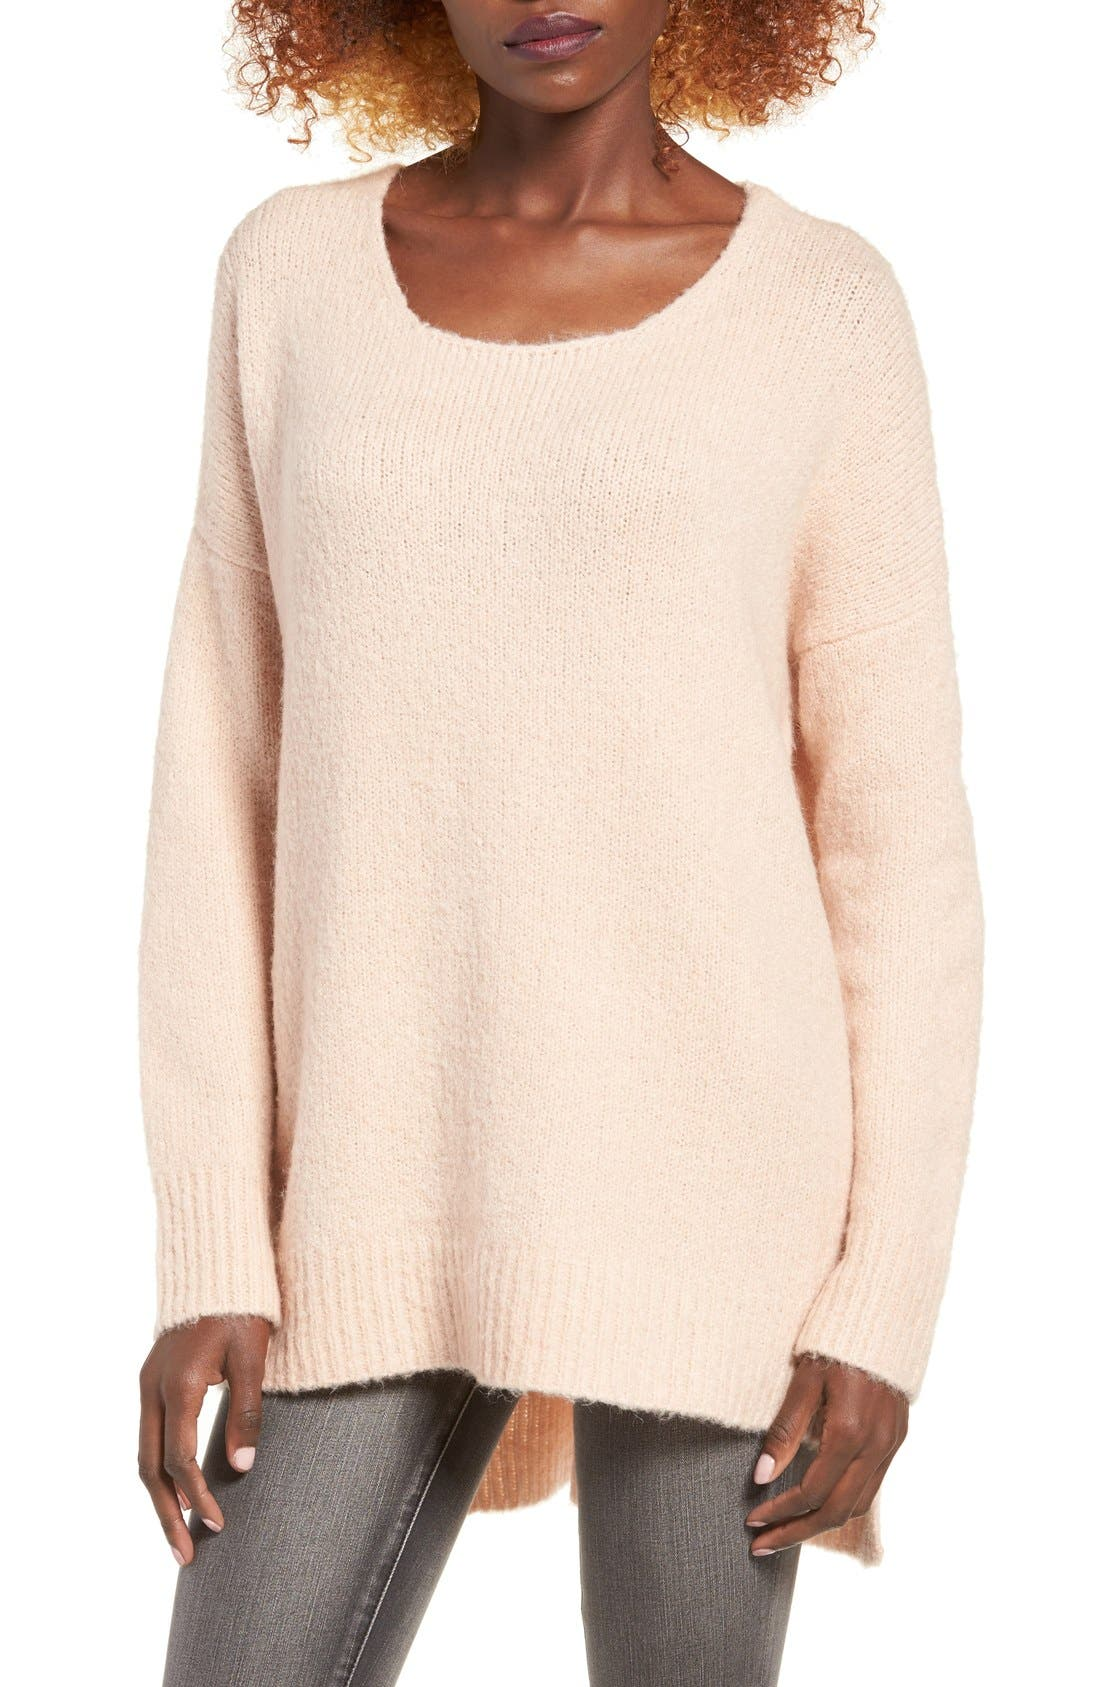 Main Image - Dreamers by Debut Cross Back Sweater